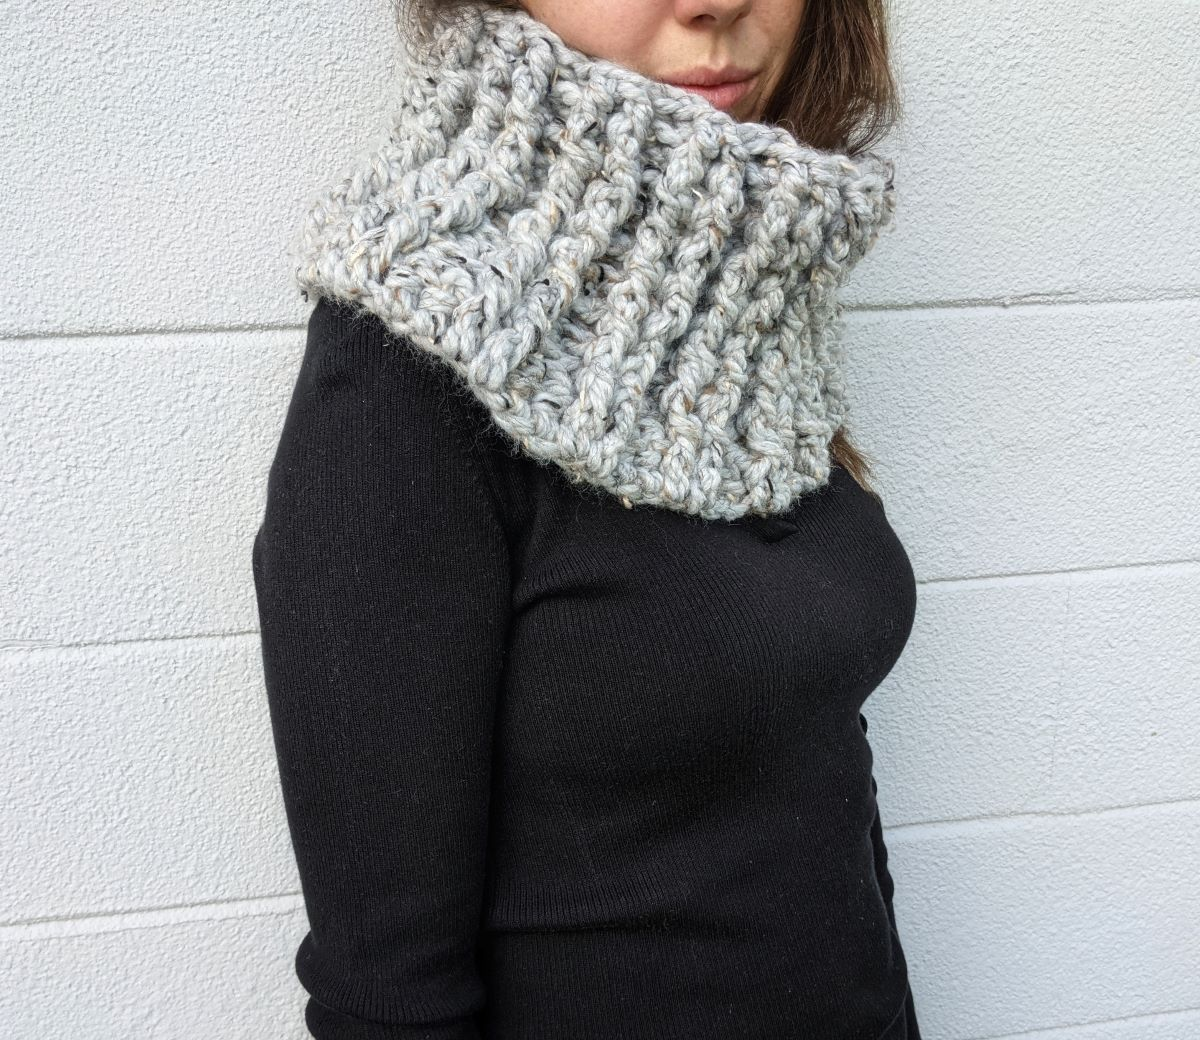 super bulky weight cowl pattern